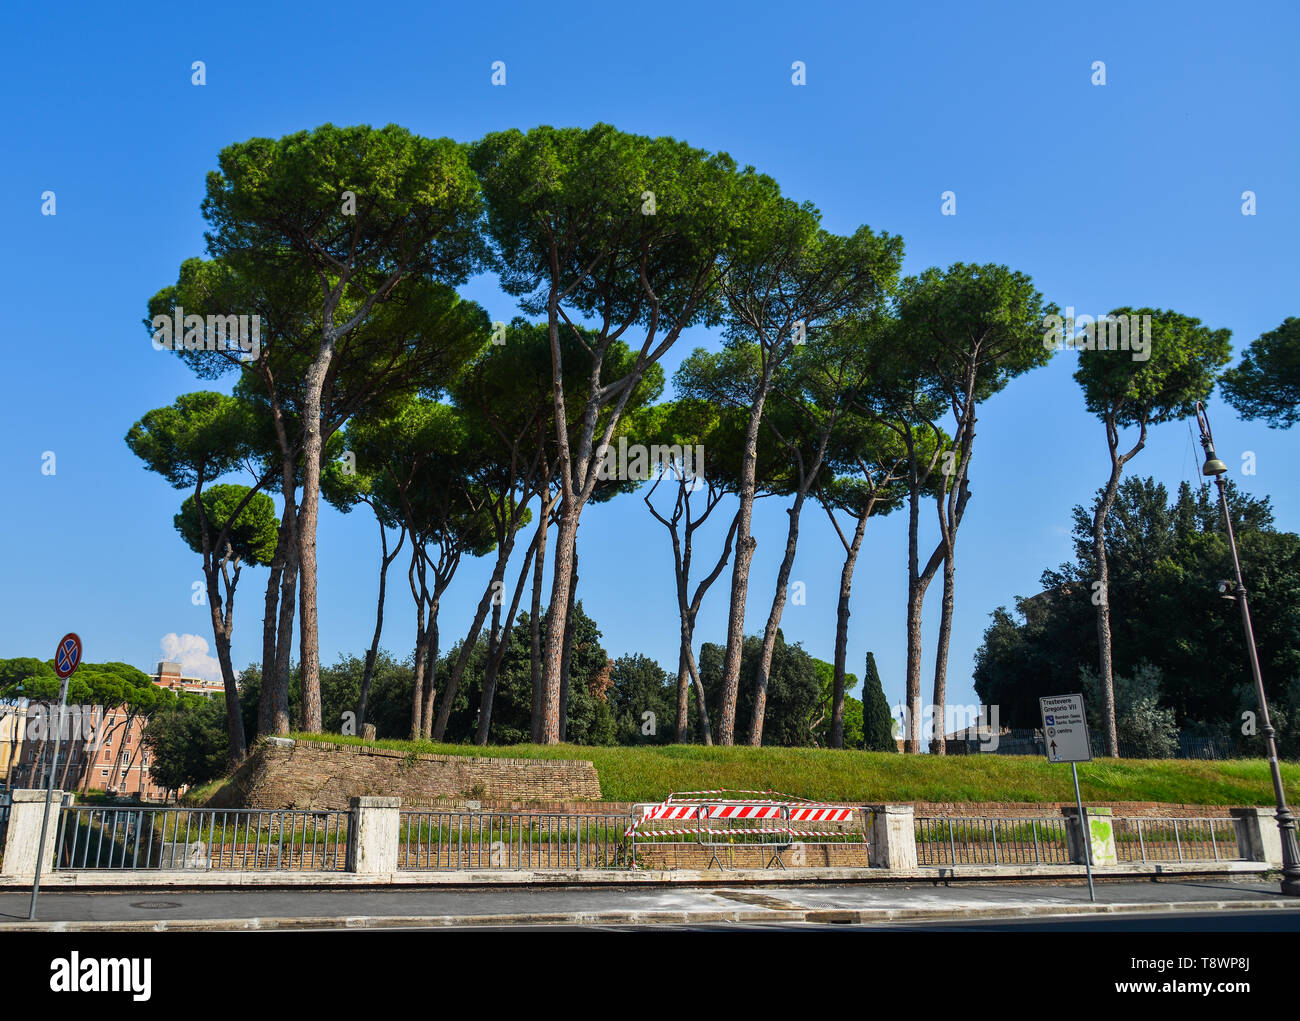 Rome, Italy - Oct 14, 2018. Italian Stone Pines (Pinus Pinea) with ancient buildings at sunny day in Rome, Italy. - Stock Image